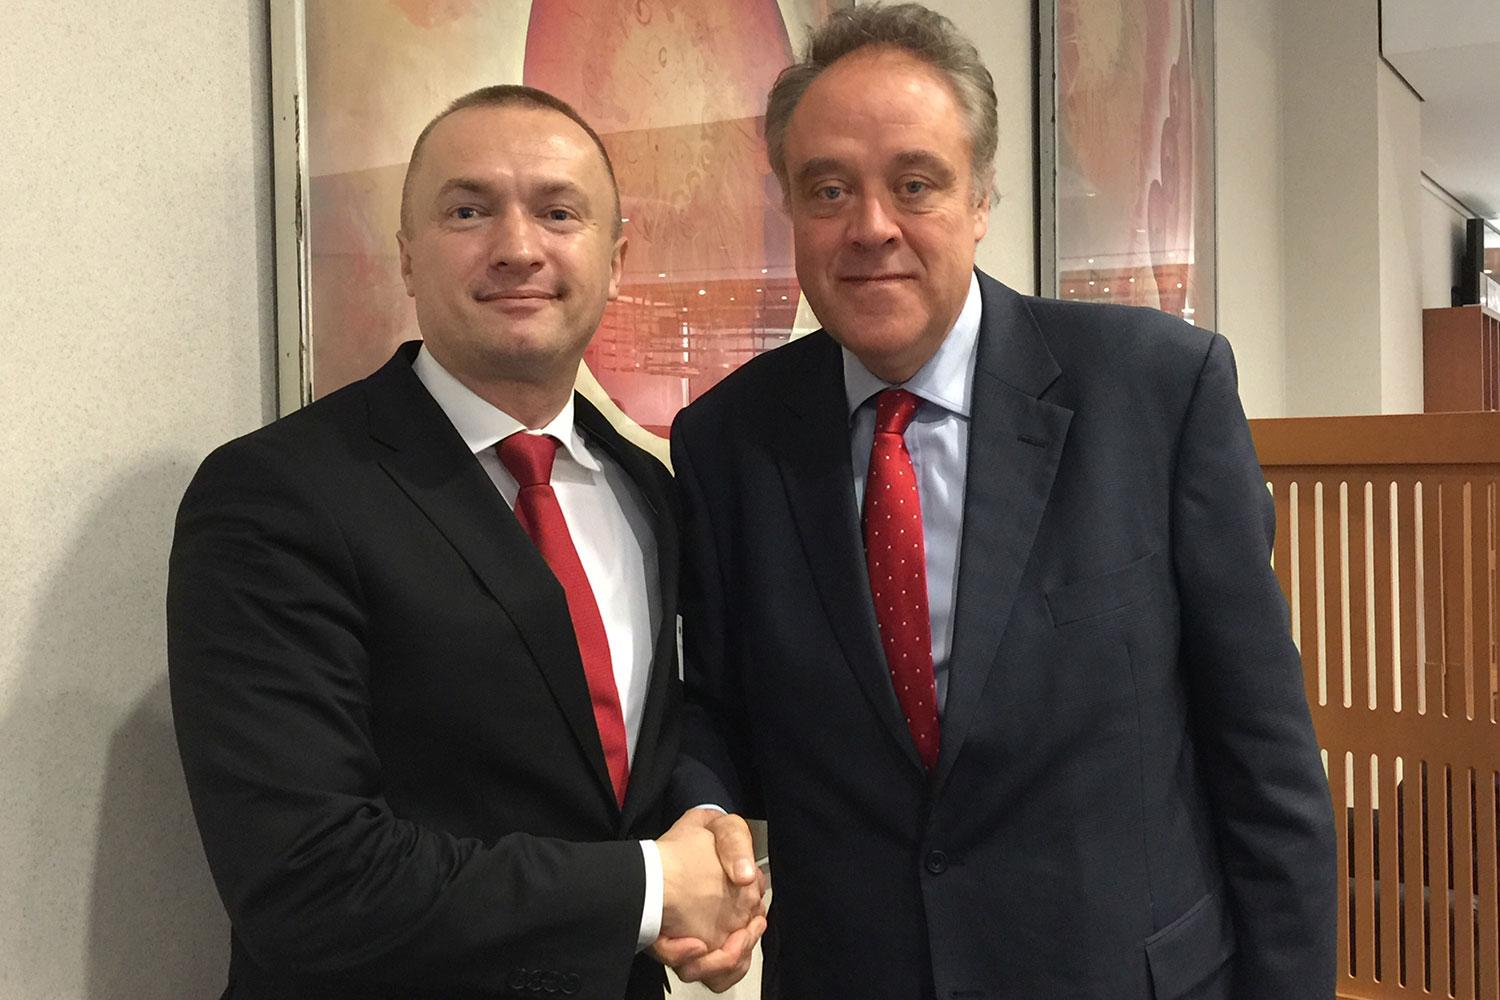 Bojan Pajtić, the President of the Democratic Party of Serbia and MEP Richard Howitt